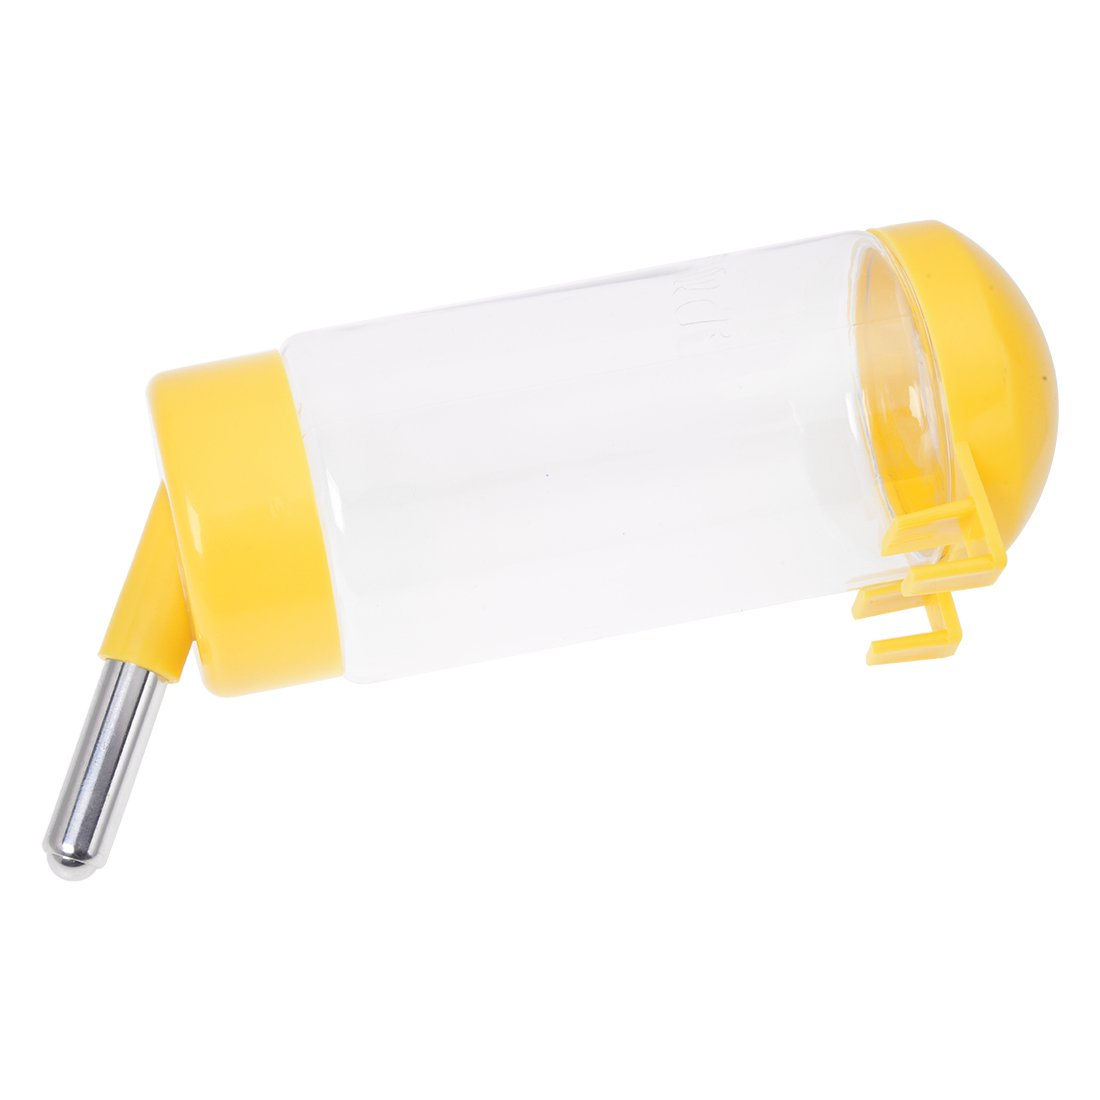 f973ff4f17f Get Quotations · SODIAL(R) Pet Dog Puppy Gerbil Hamster Cage Water Feeder  Bottle Yellow